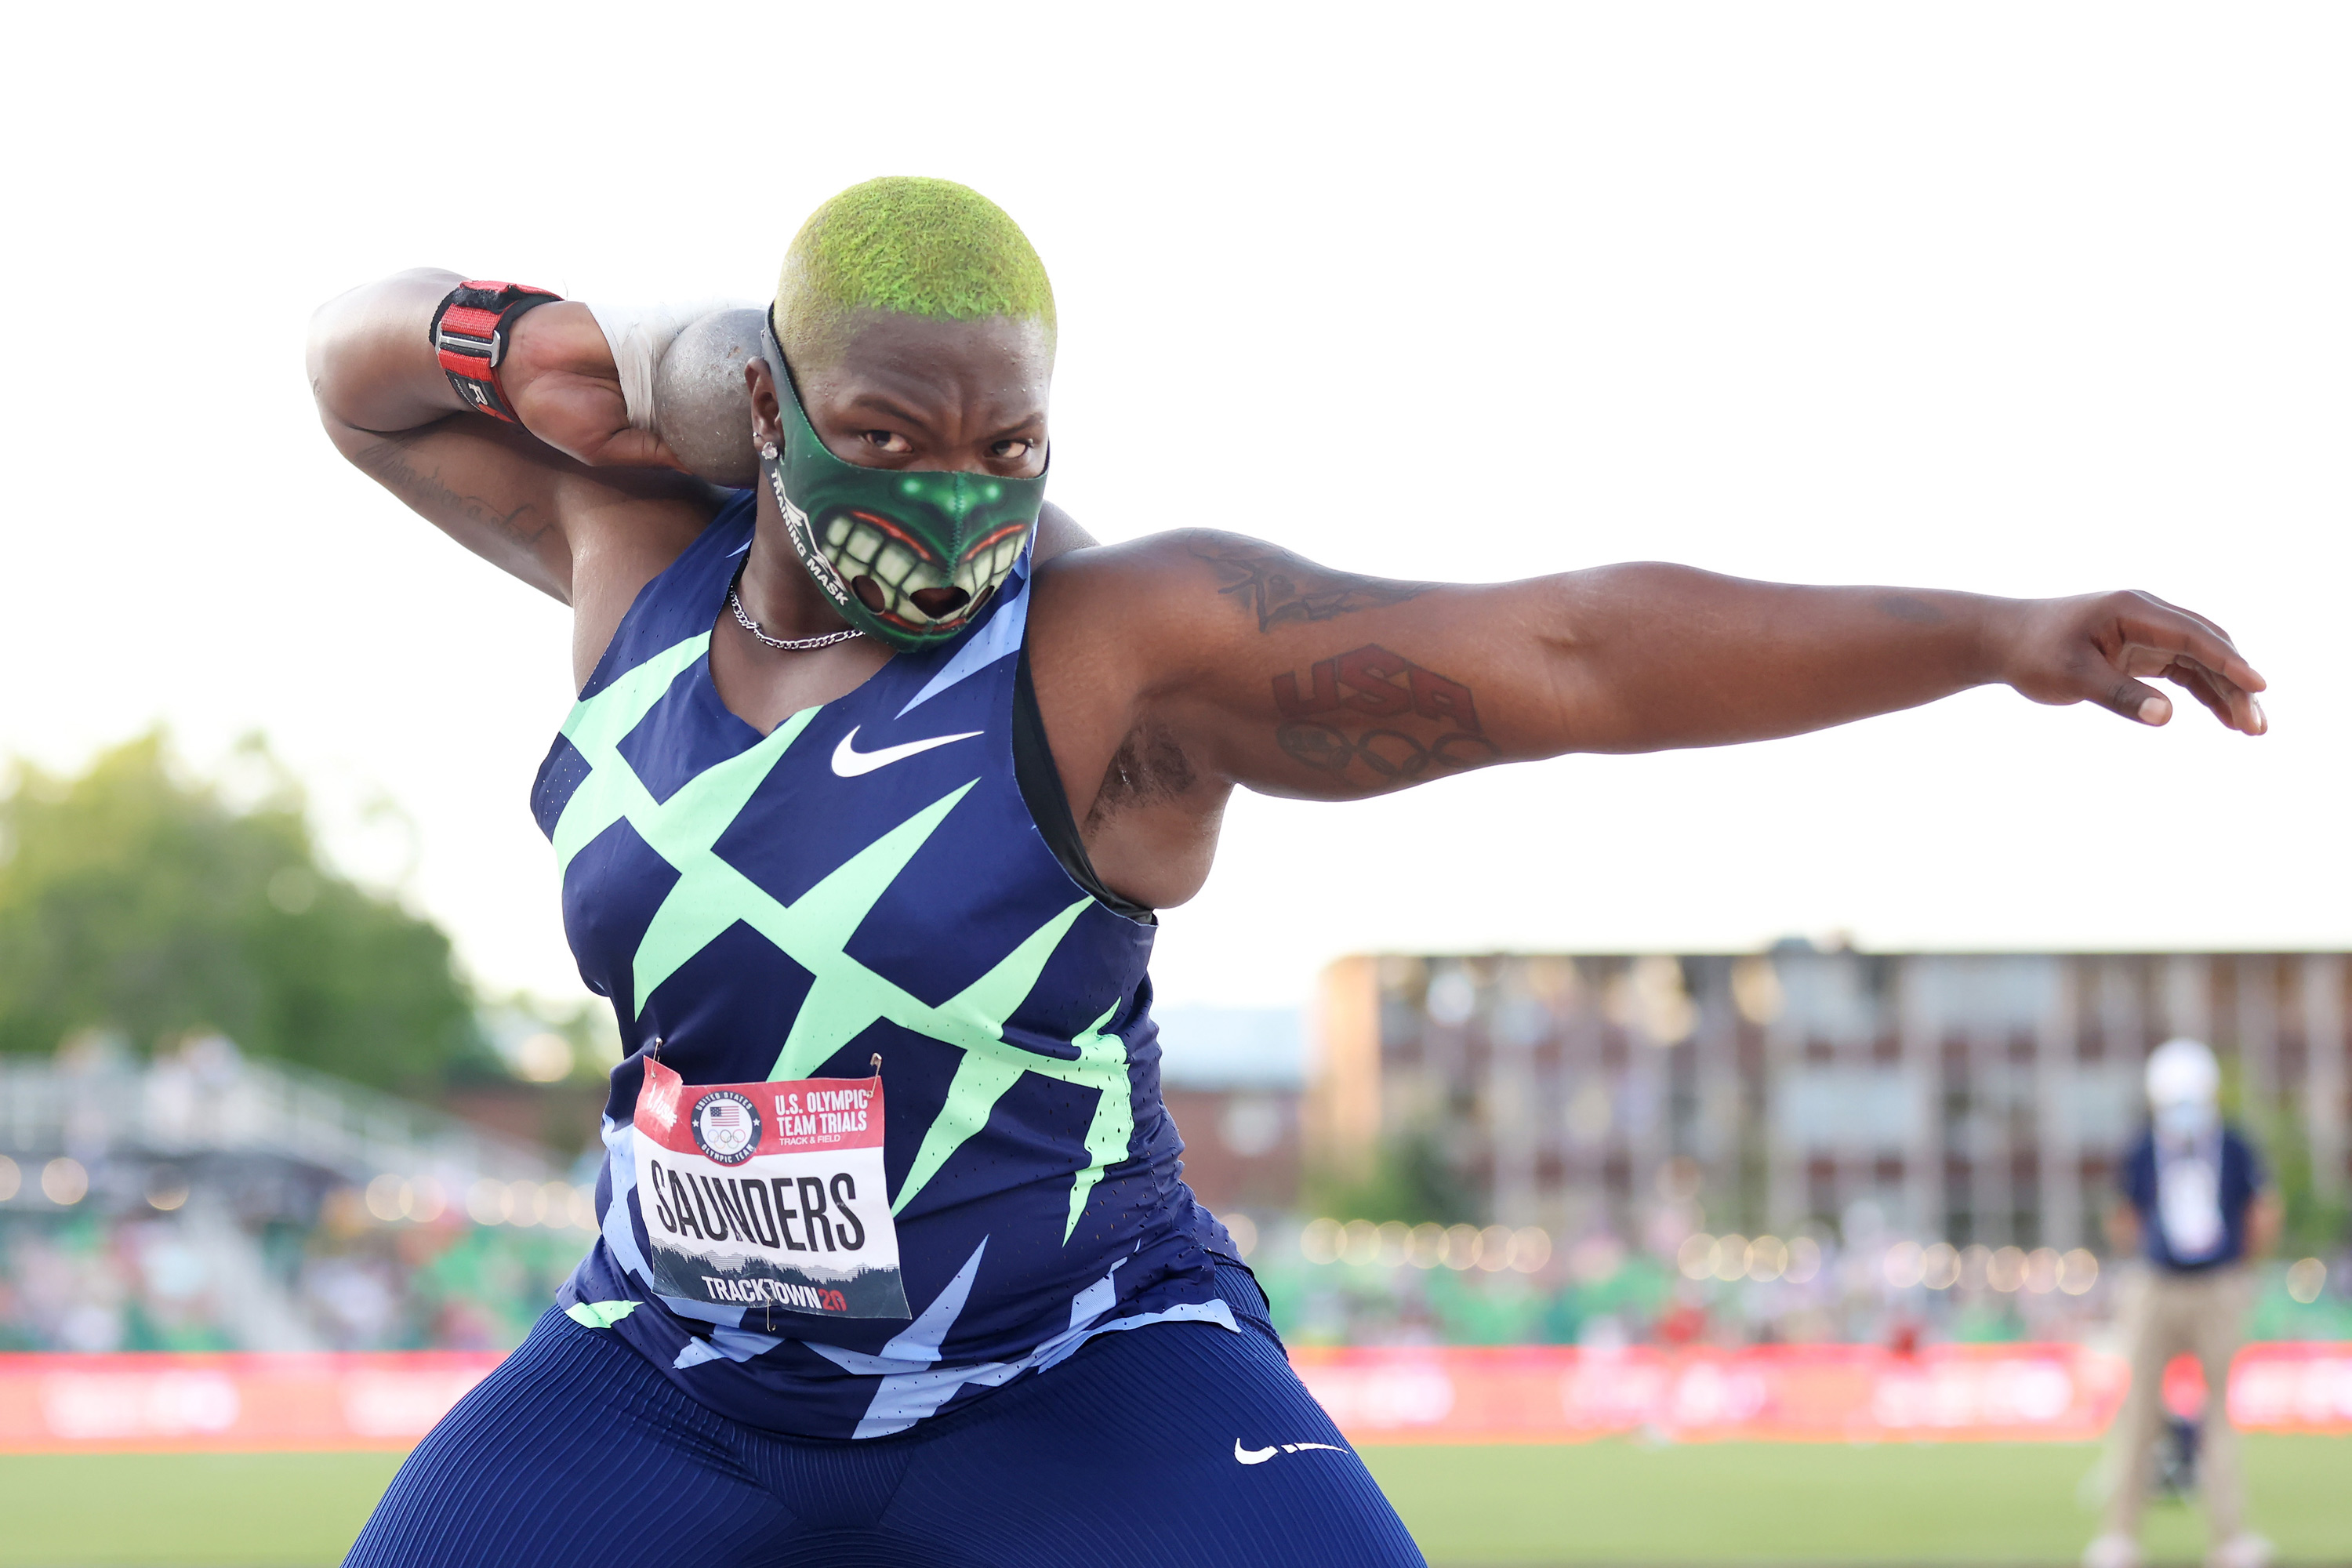 Raven Saunders competes in the 2020 US Olympic Track & Field Team Trials at Hayward Field on June 24 in Eugene, Oregon.